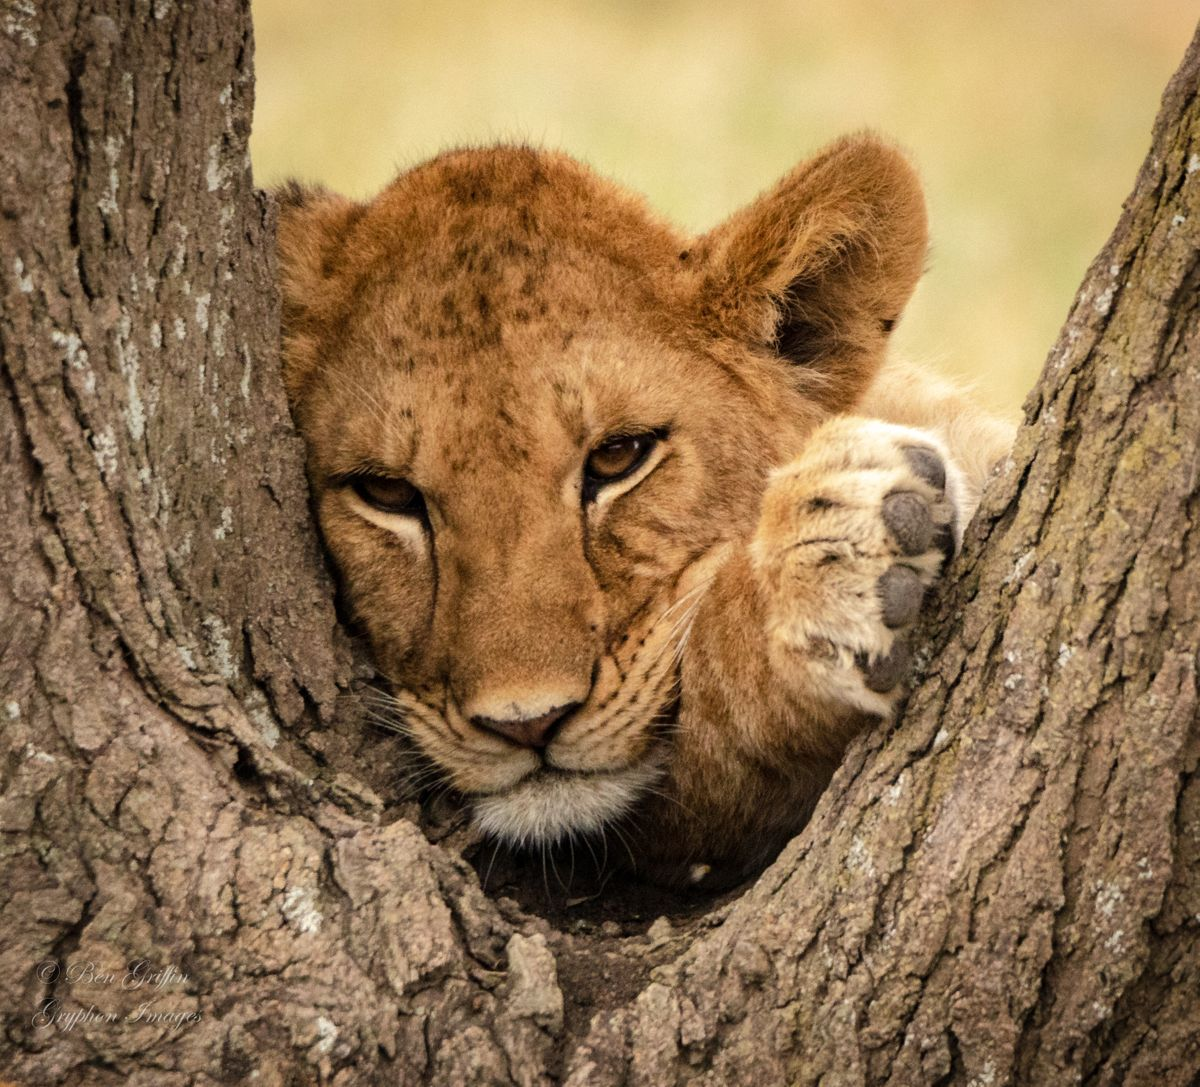 Lion Cub Napping in Tree-0190